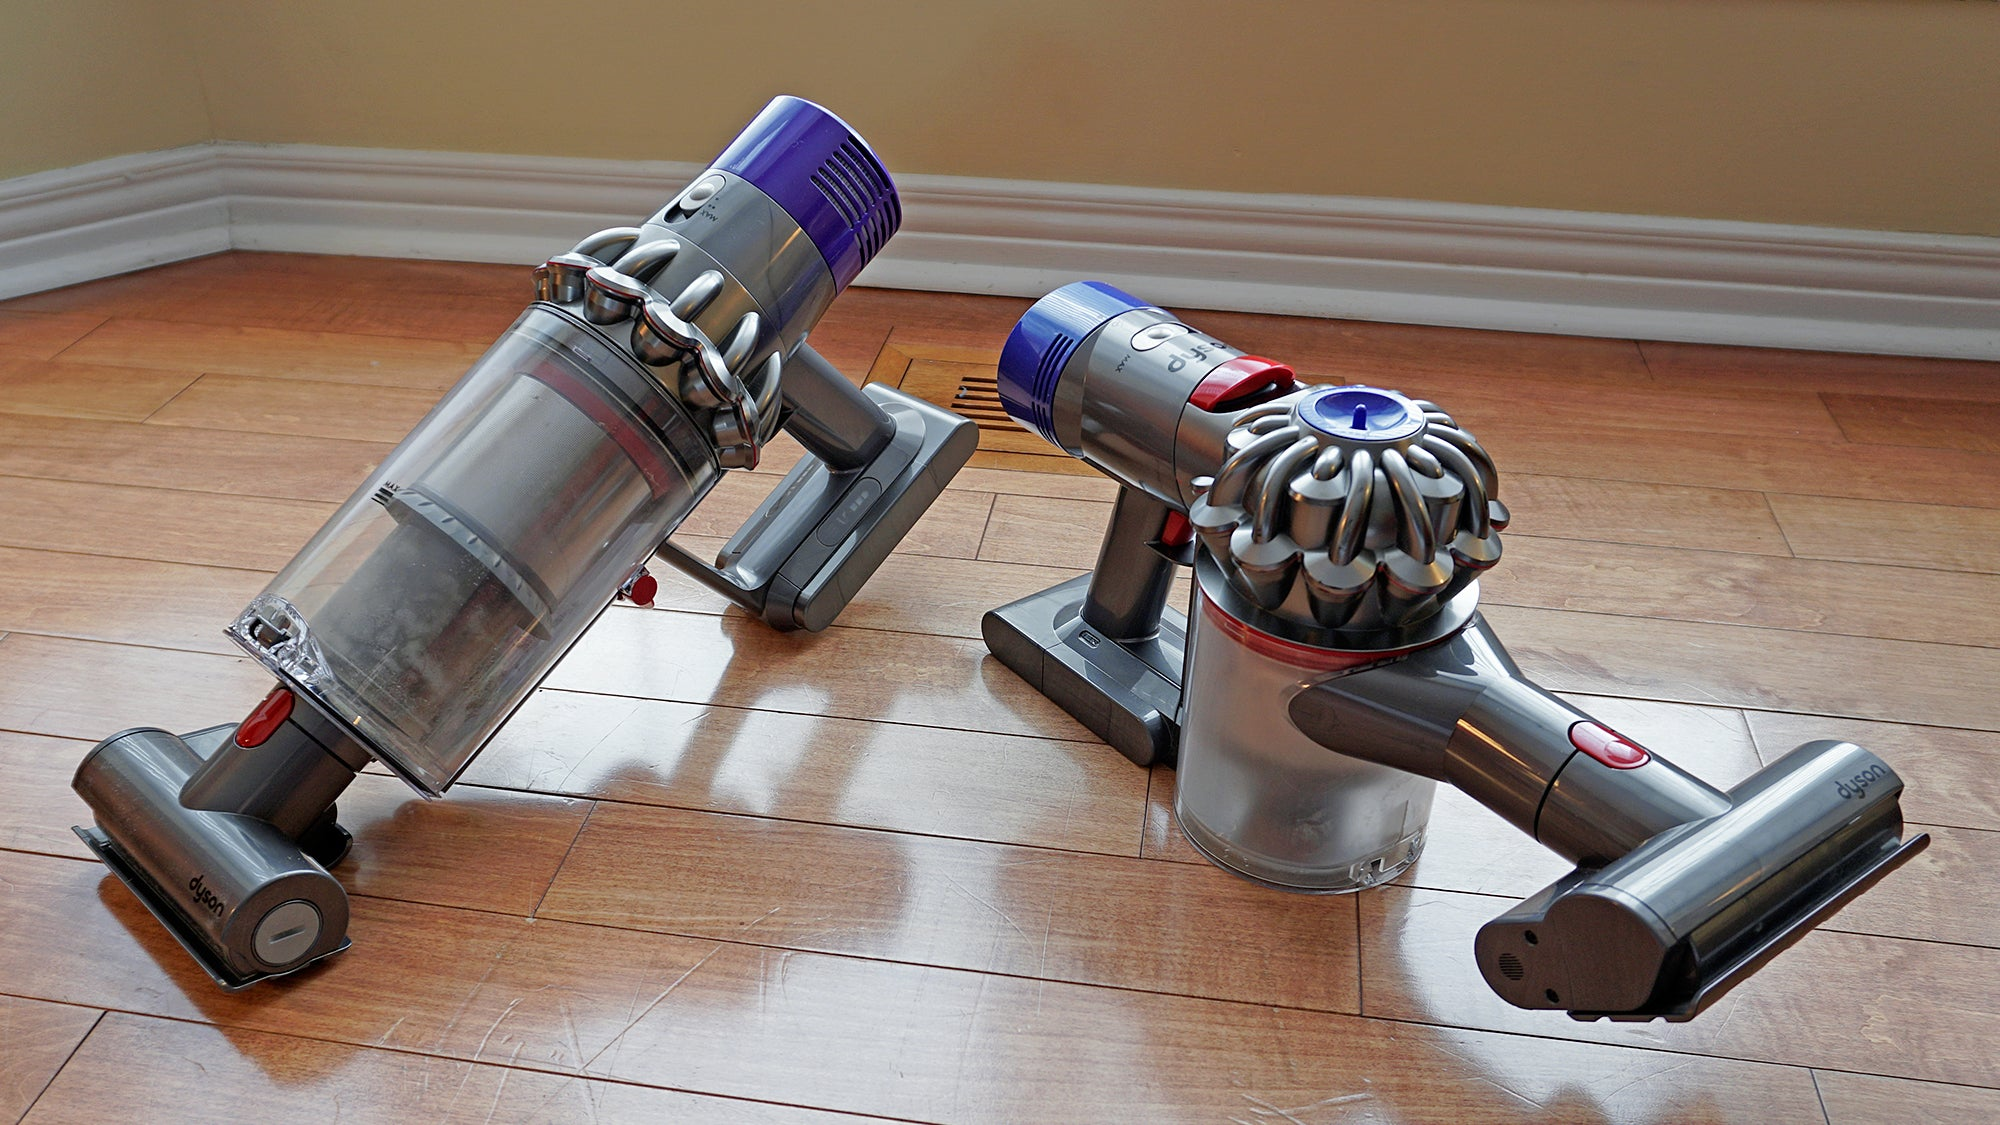 dyson 39 s pricey cordless vac is so good it 39 s killing cords. Black Bedroom Furniture Sets. Home Design Ideas